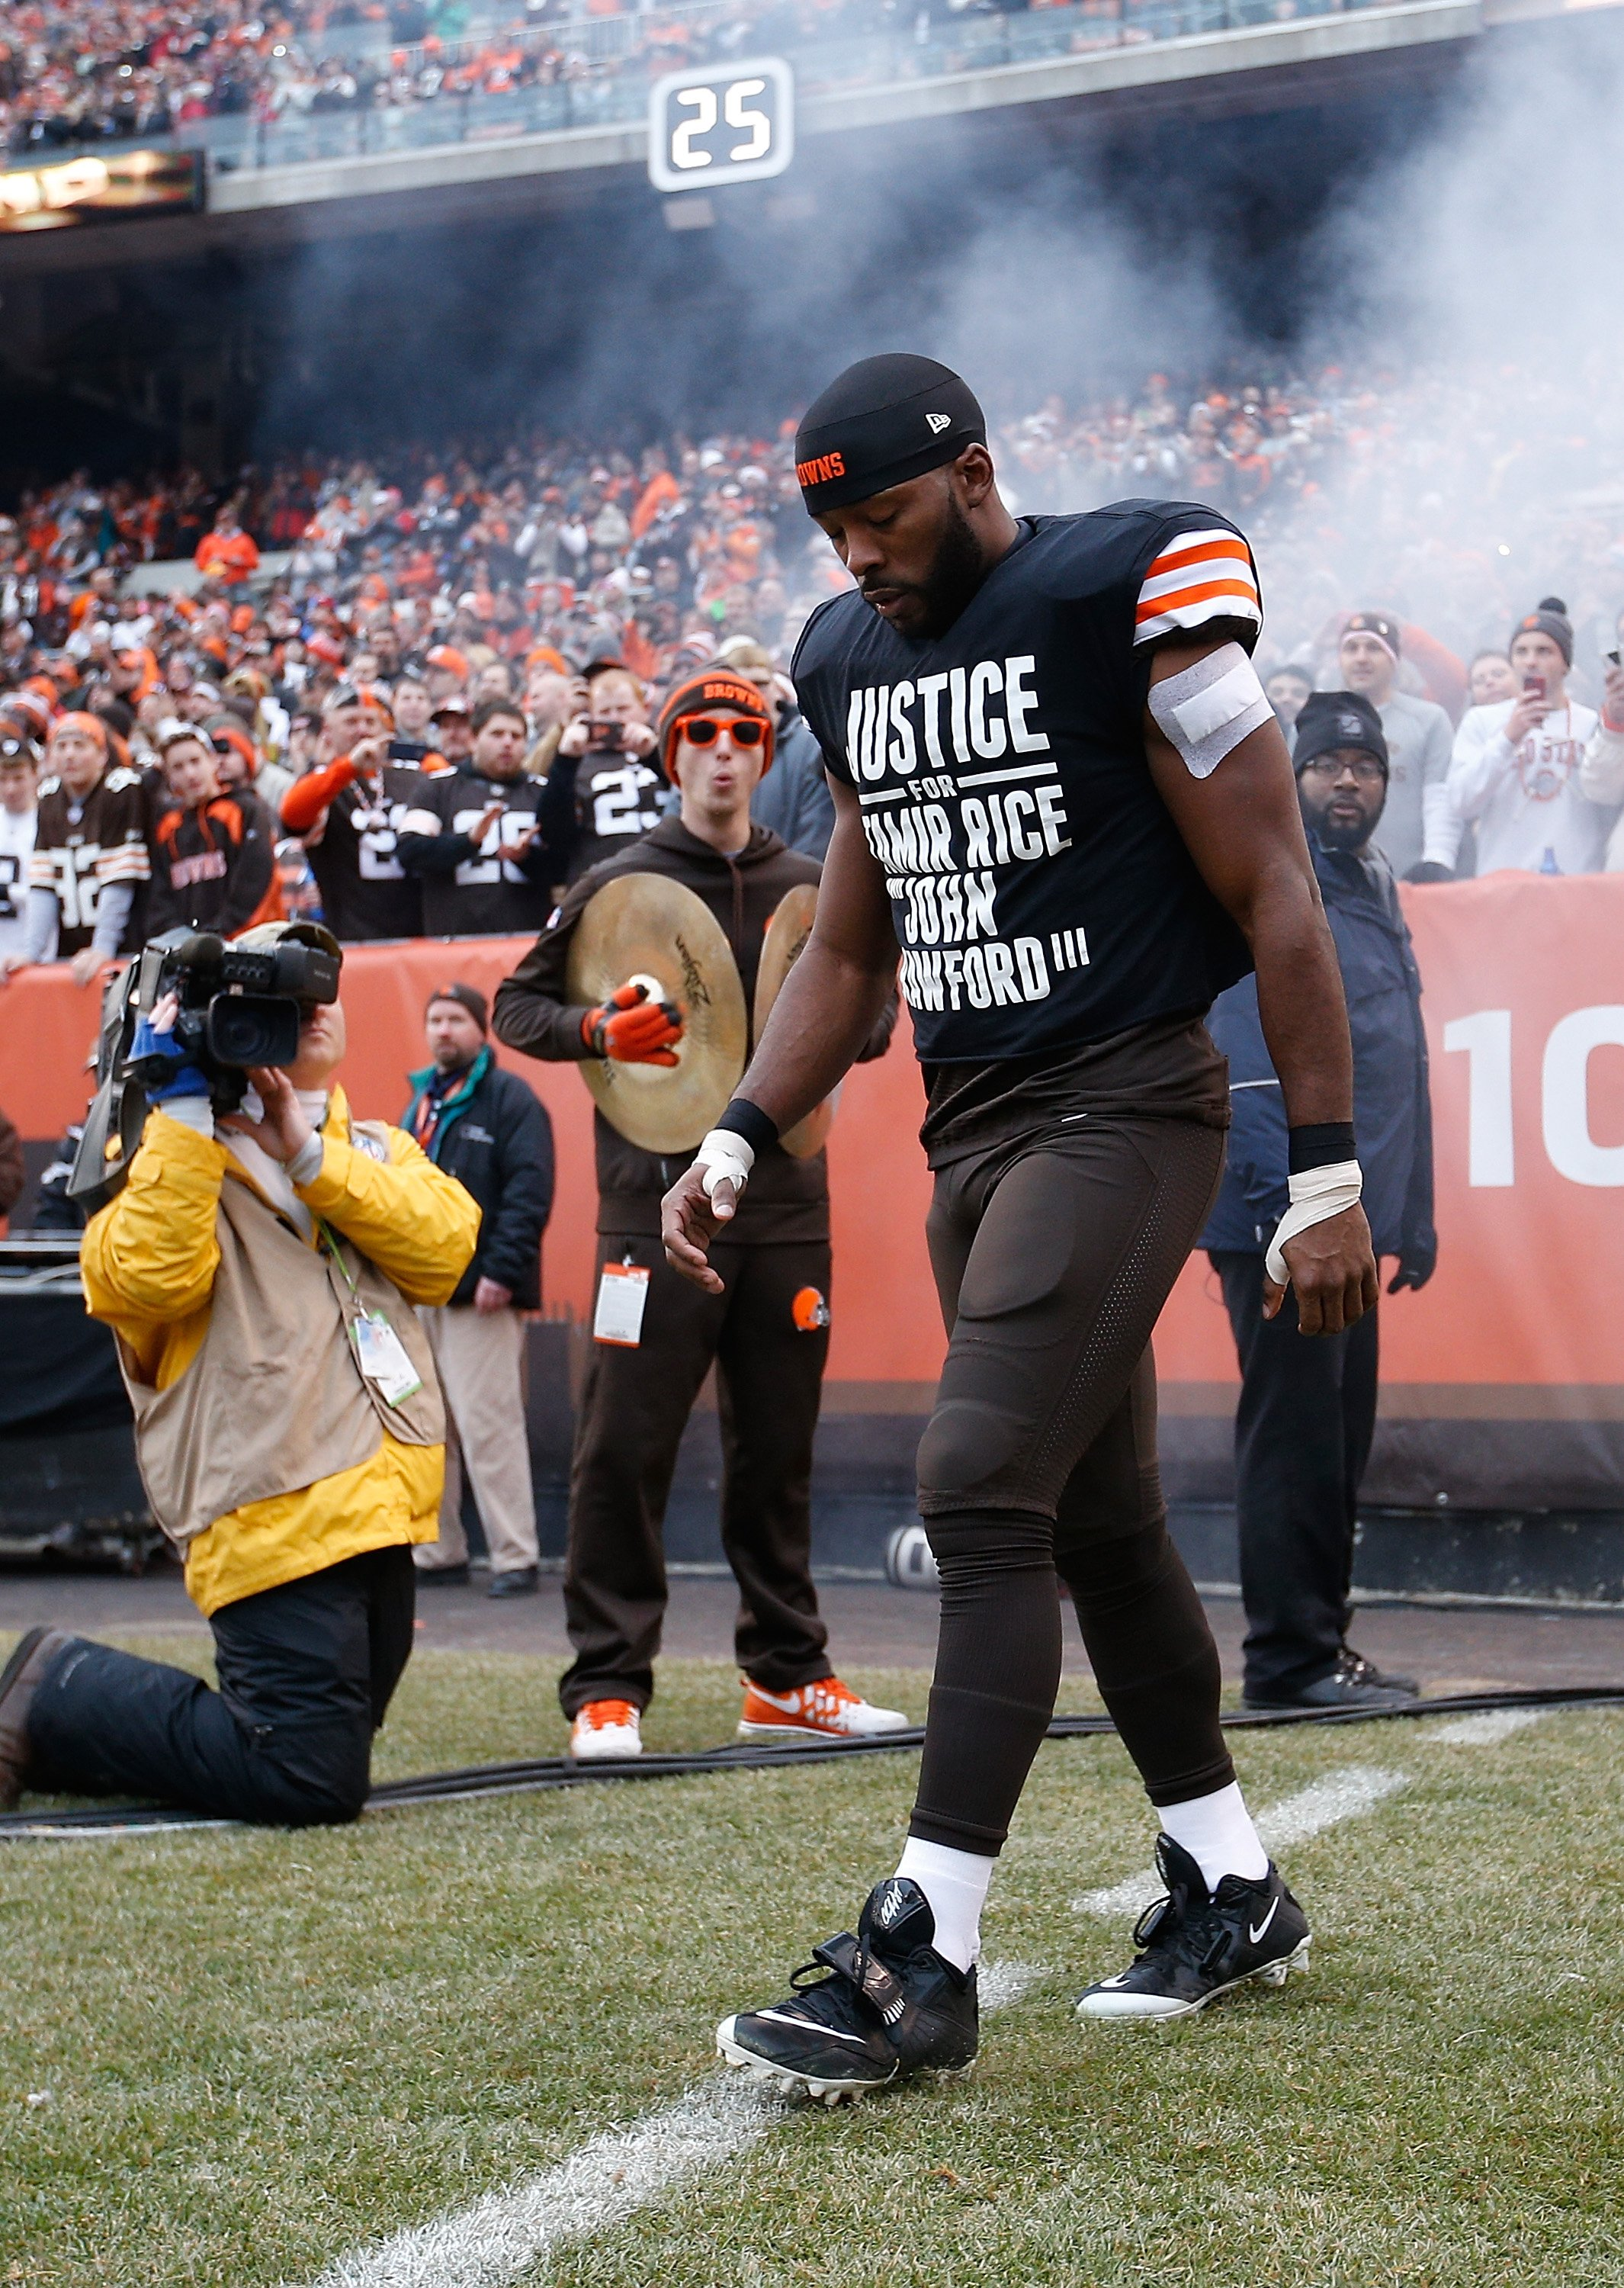 Andrew Hawkins #16 of the Cleveland Browns walks onto the field while wearing a protest shirt during introductions prior to the game against the Cincinnati Bengals at FirstEnergy Stadium on Dec. 14, 2014 in Cleveland.